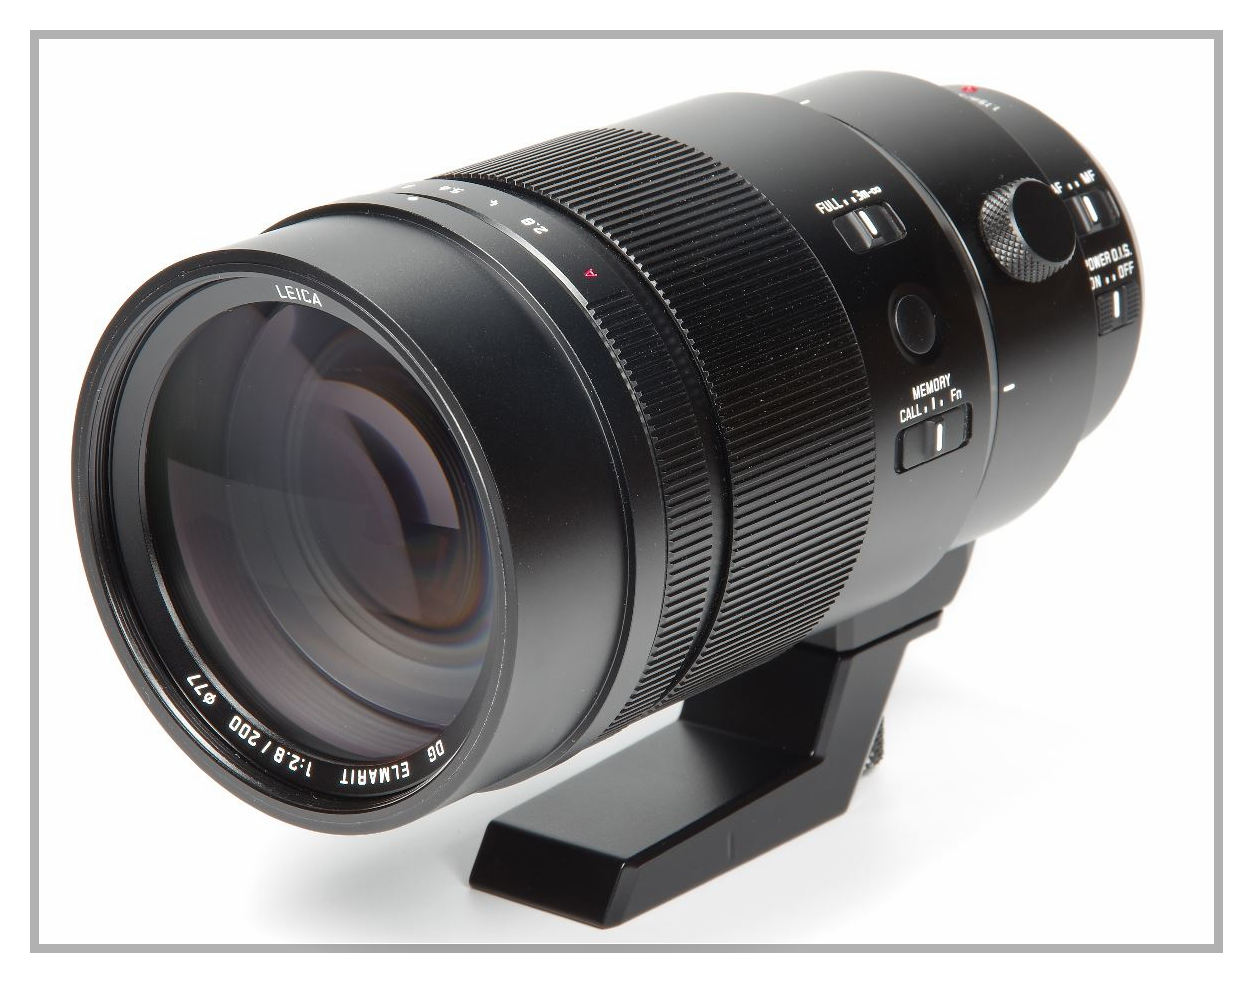 Panasonic Leica DG Elmarit 200 f2.8 Power OIS